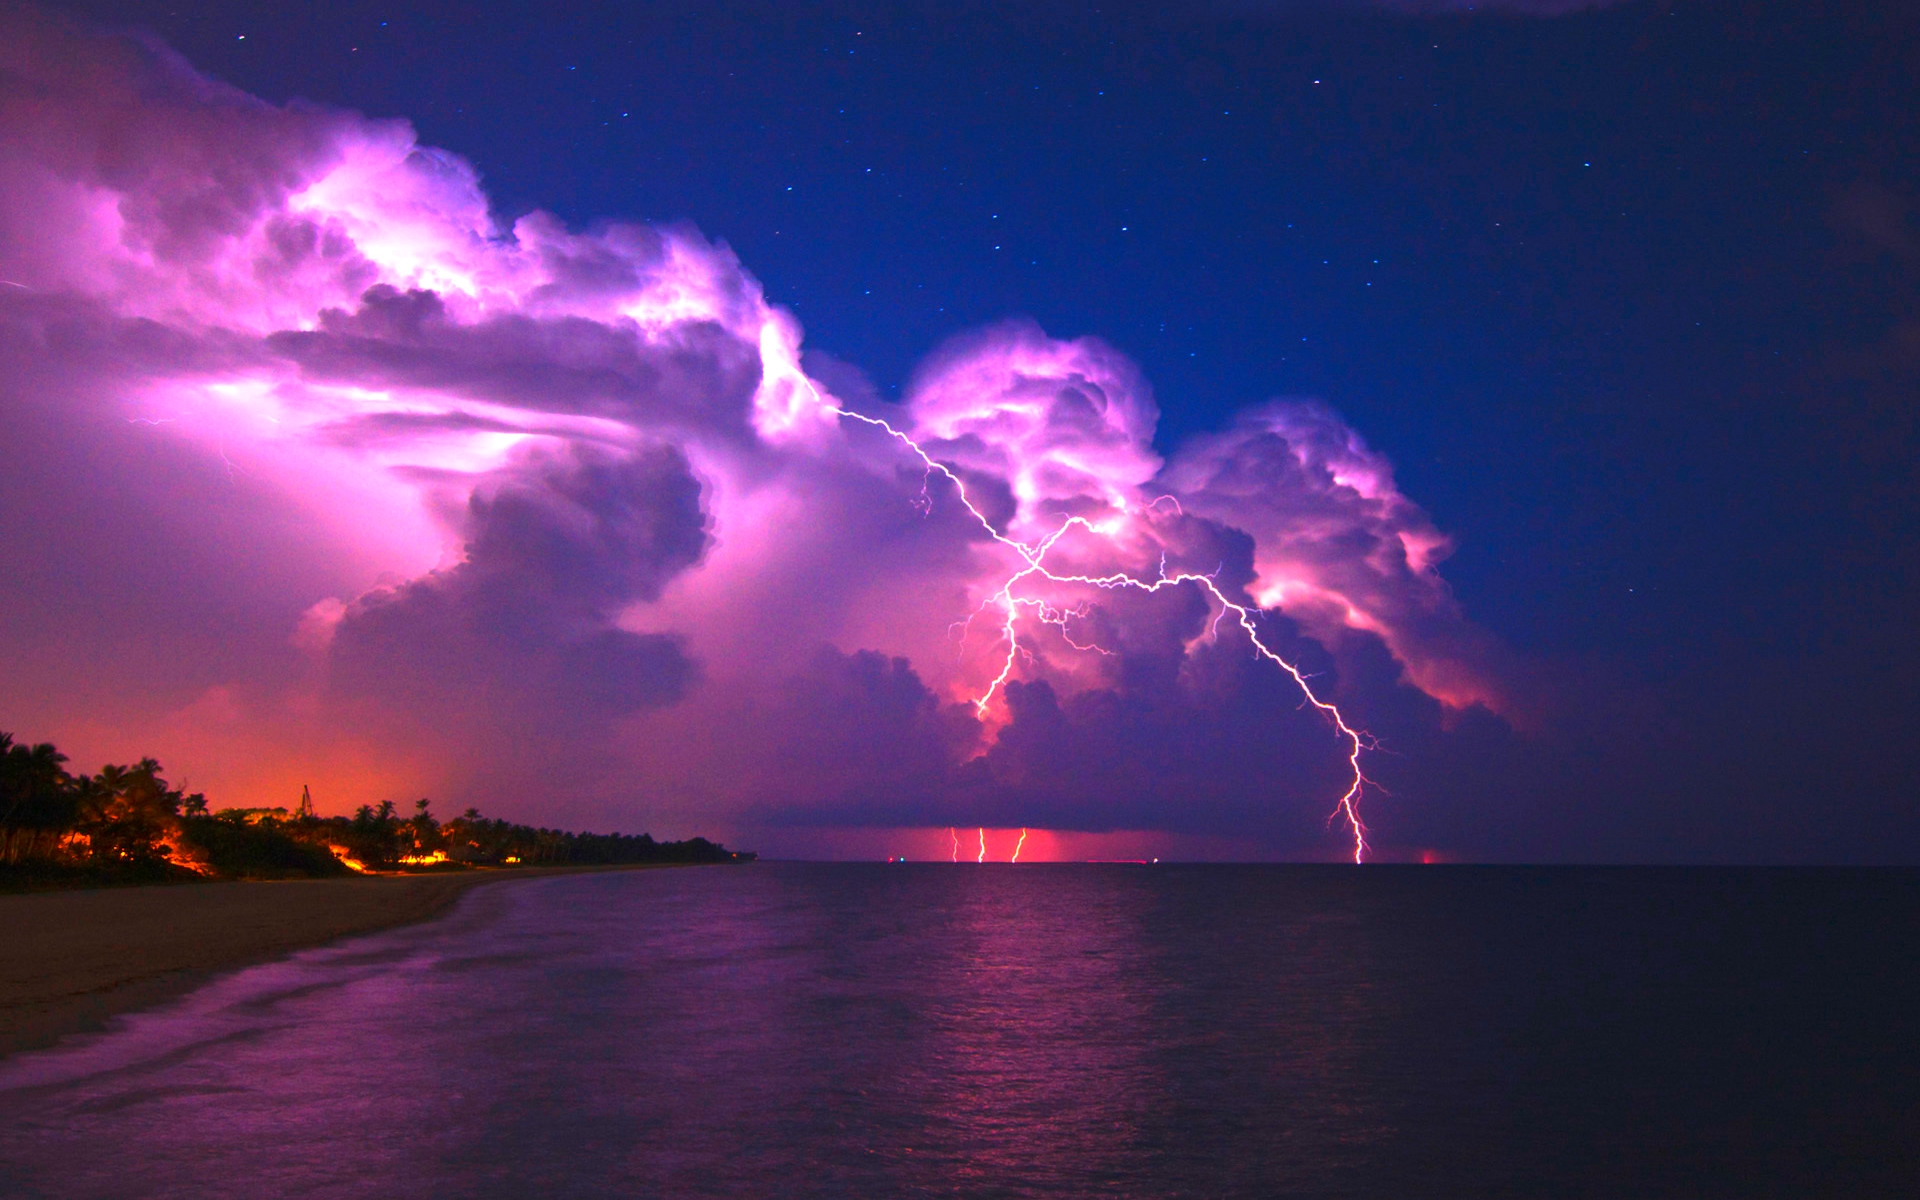 Free lightning wallpaper 33477 1920x1200 px free lightning wallpaper 33477 voltagebd Image collections